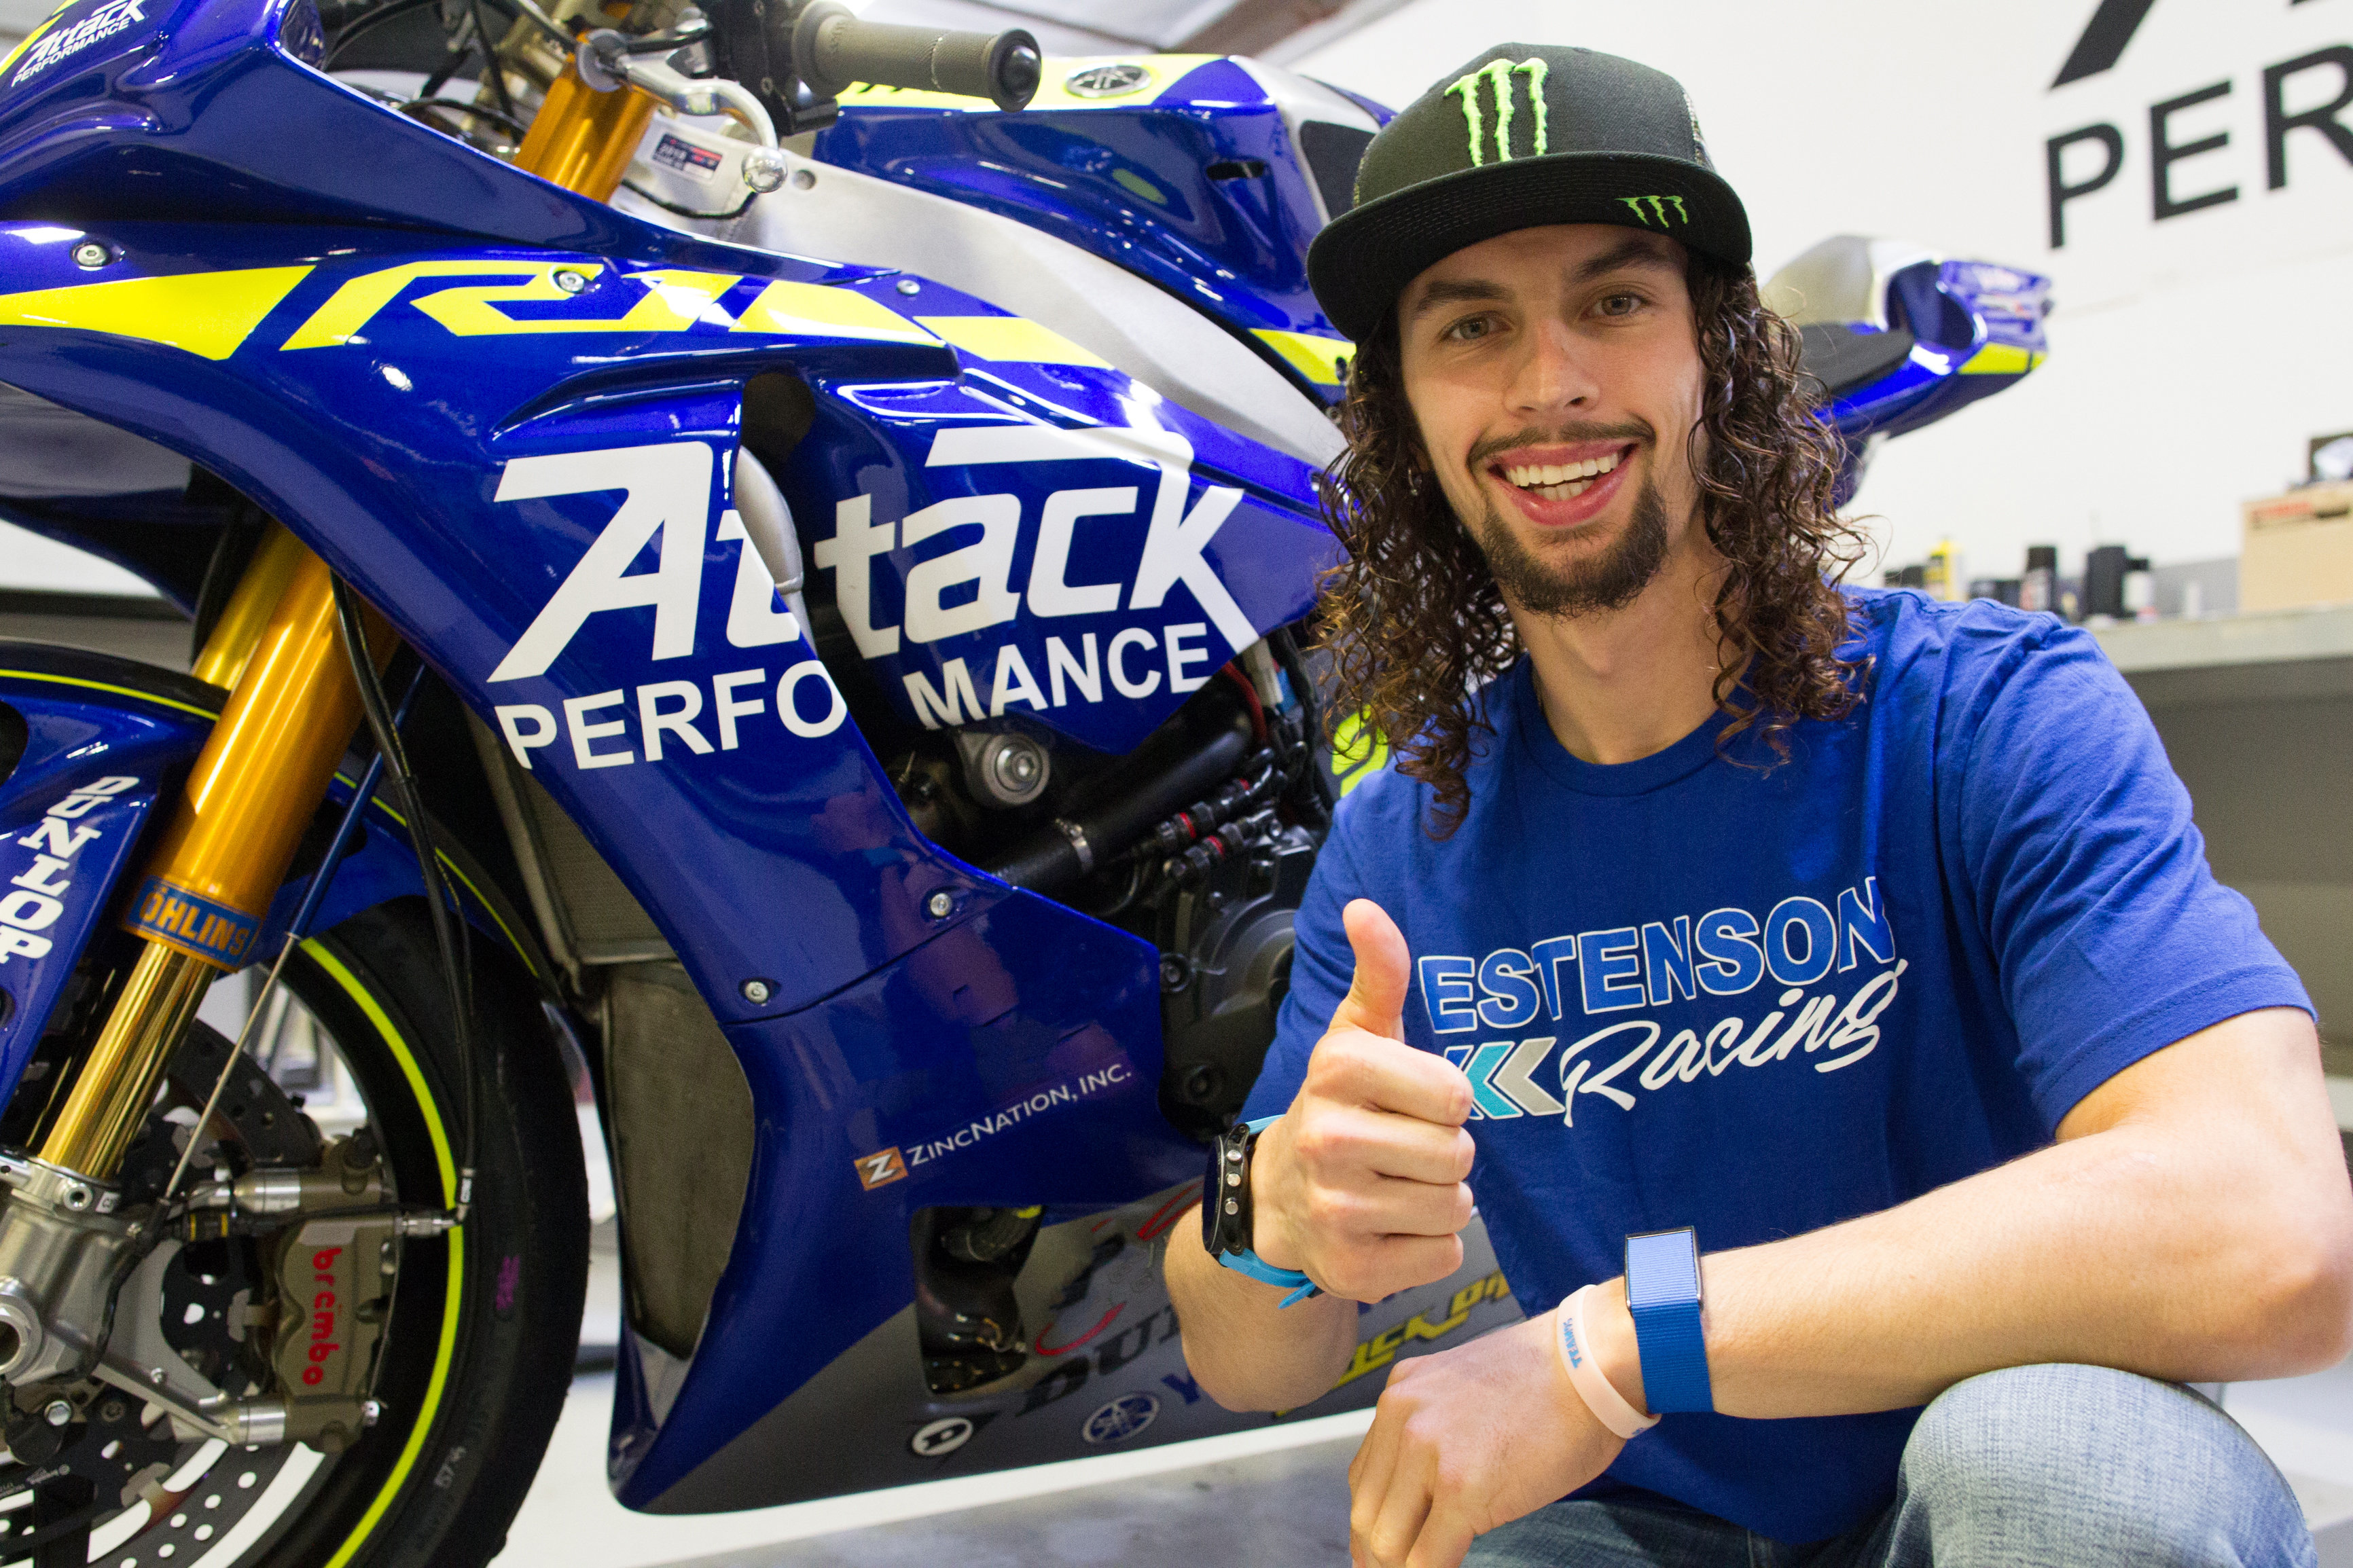 JD Beach will ride an Attack Performance Yamaha in the MotoAmerica Superbike Series in 2019